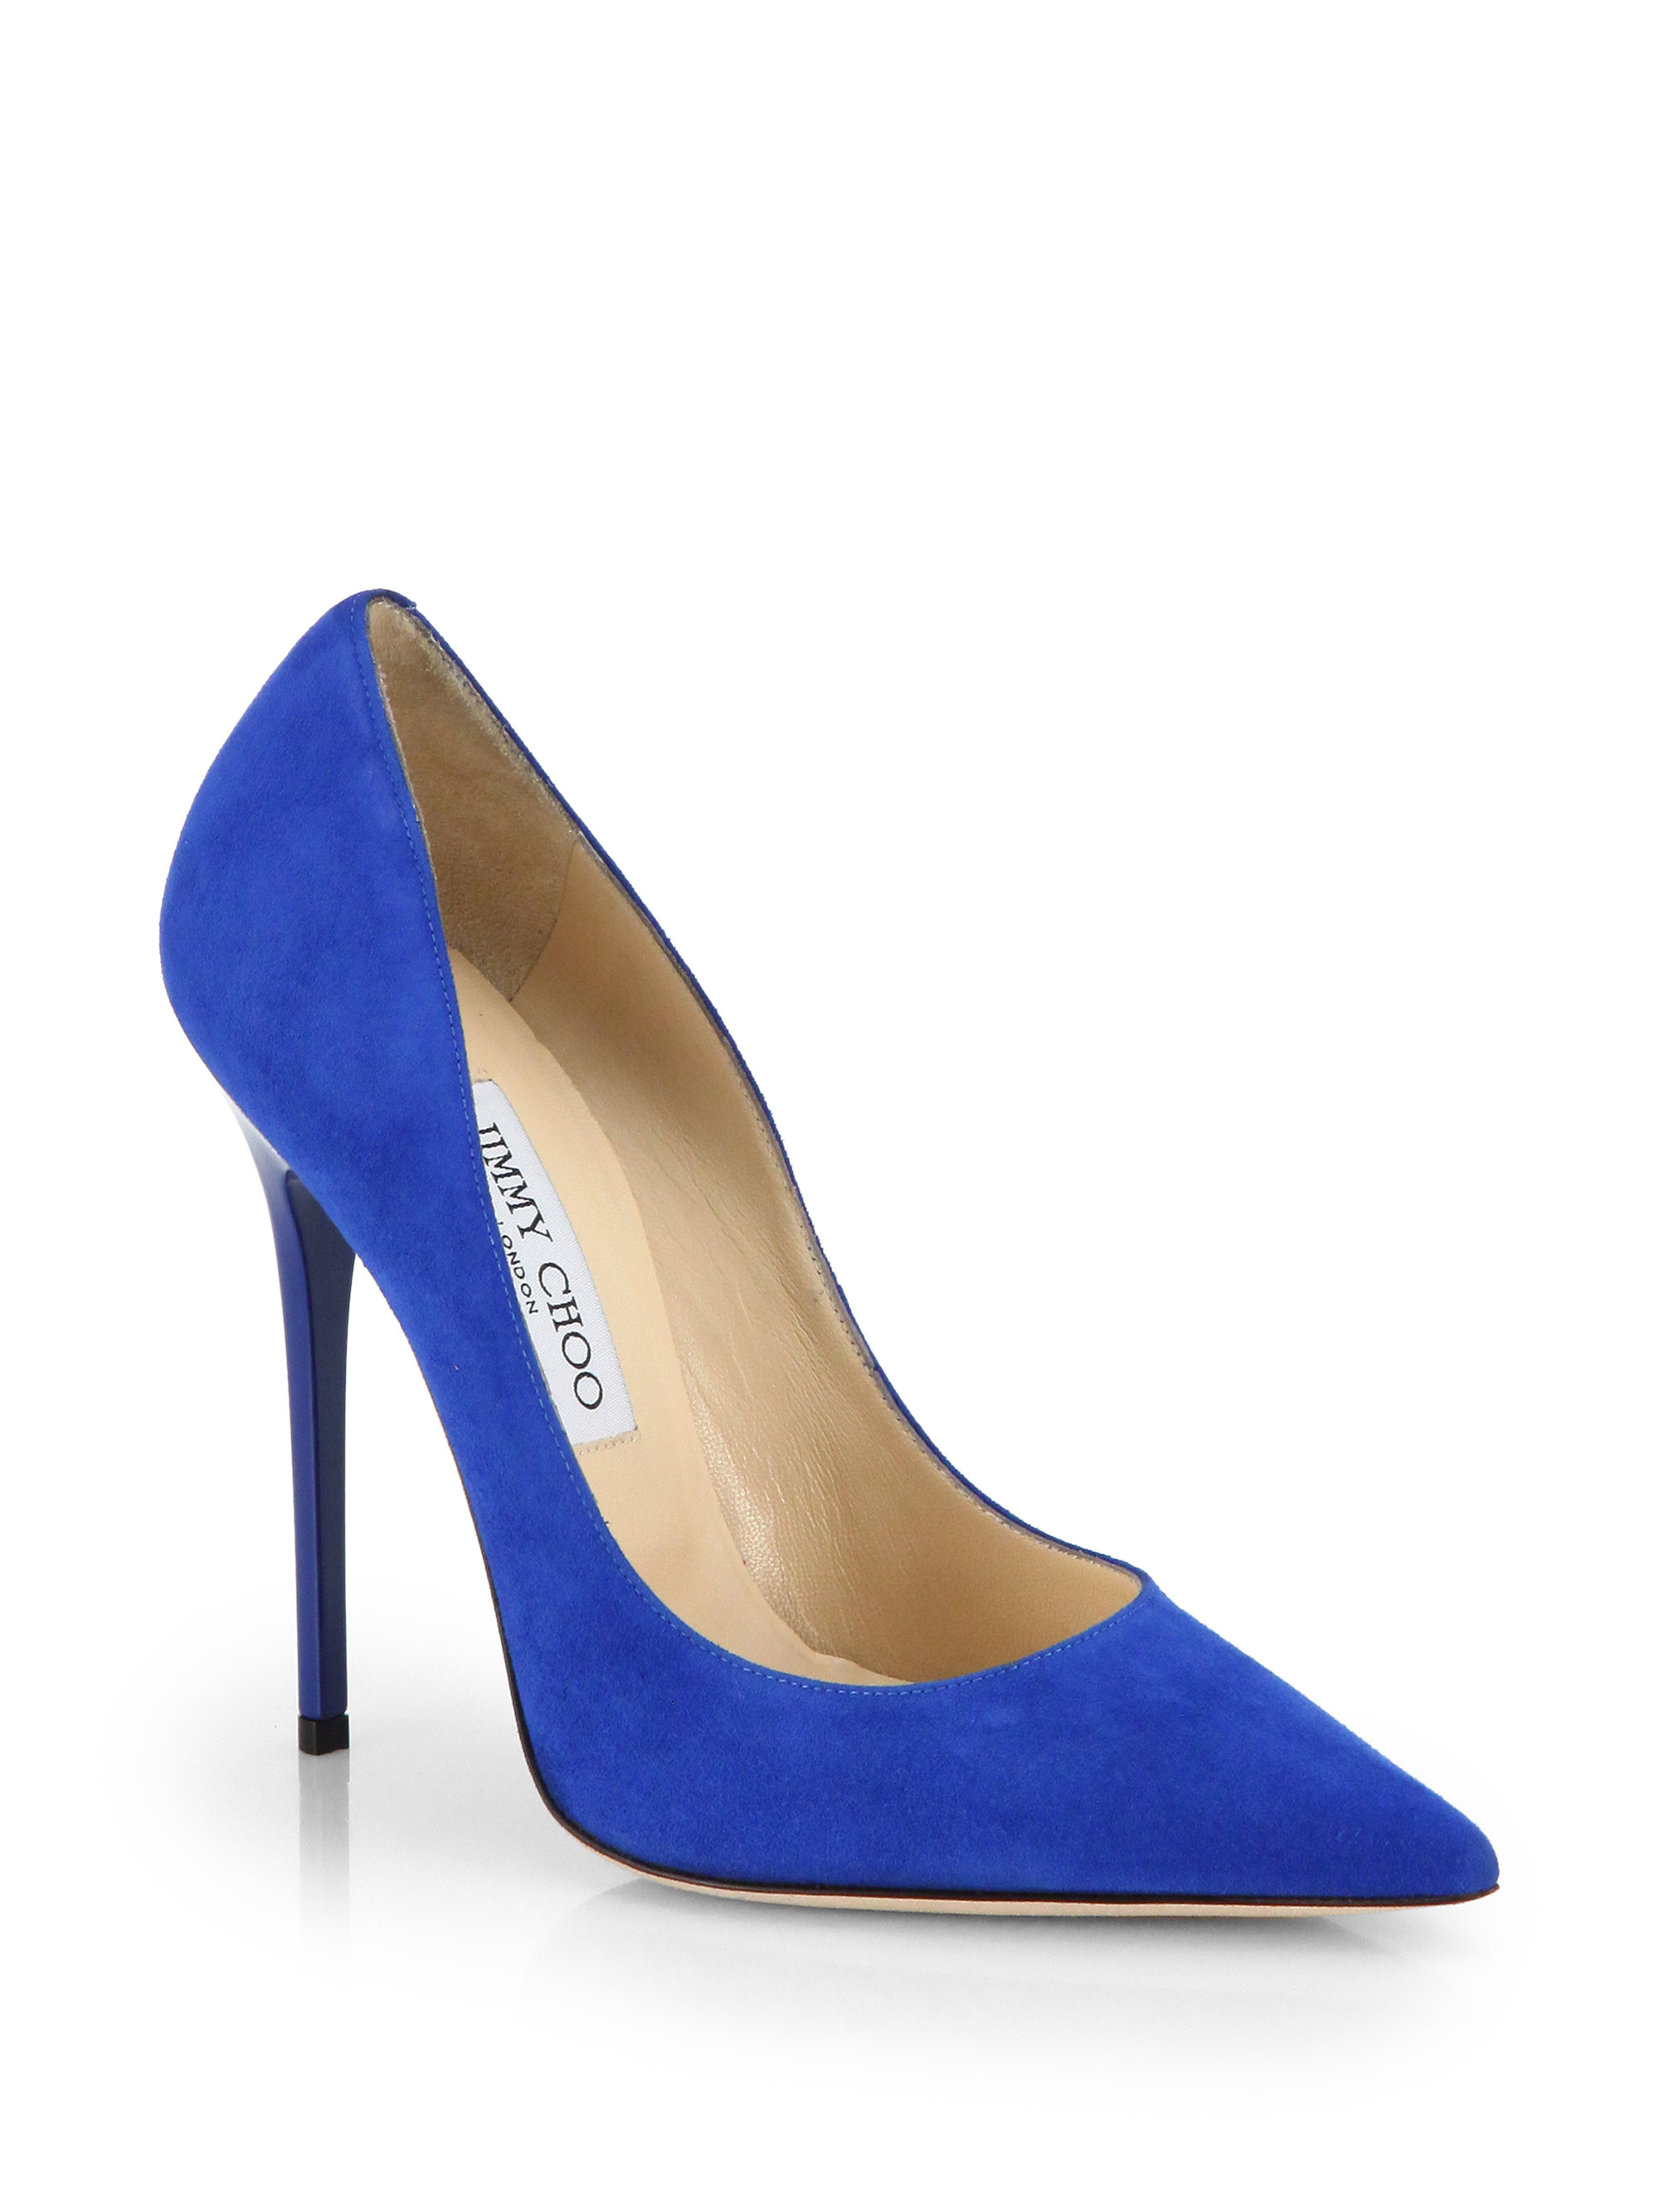 faf67561d1d3 ... coupon code for lyst jimmy choo anouk suede pumps in blue dc549 76e23